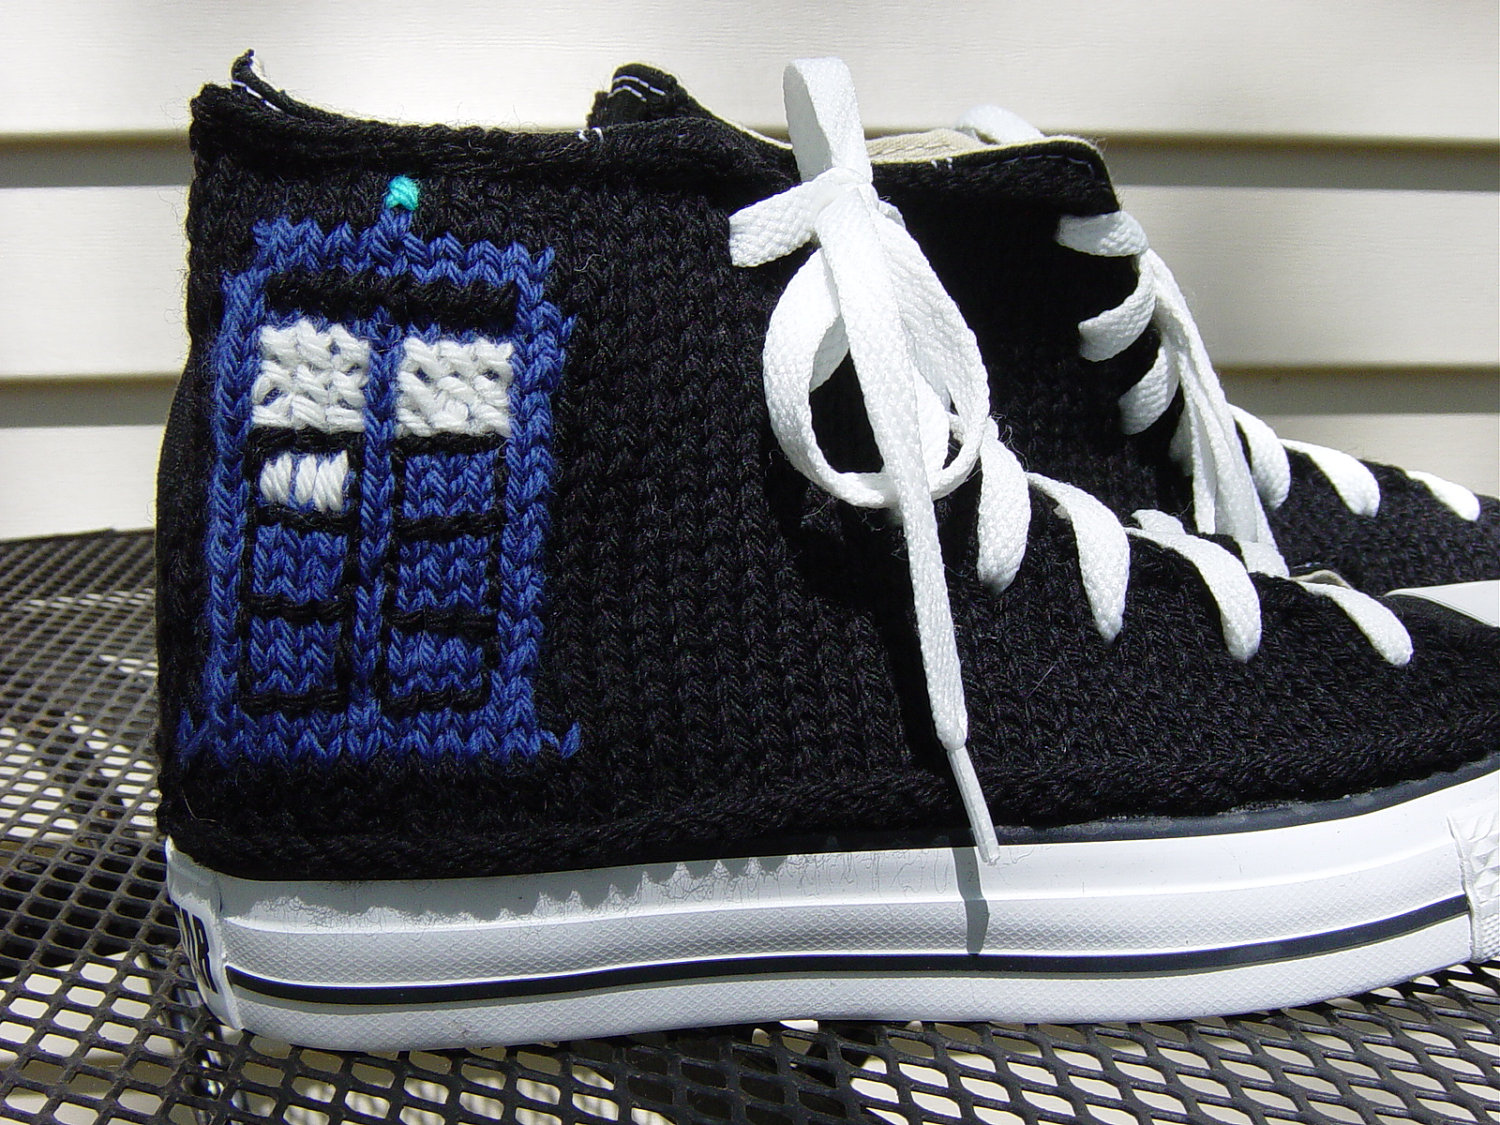 2a6cdacc6fb3 Knit Converse Sneakers for Final Fantasy